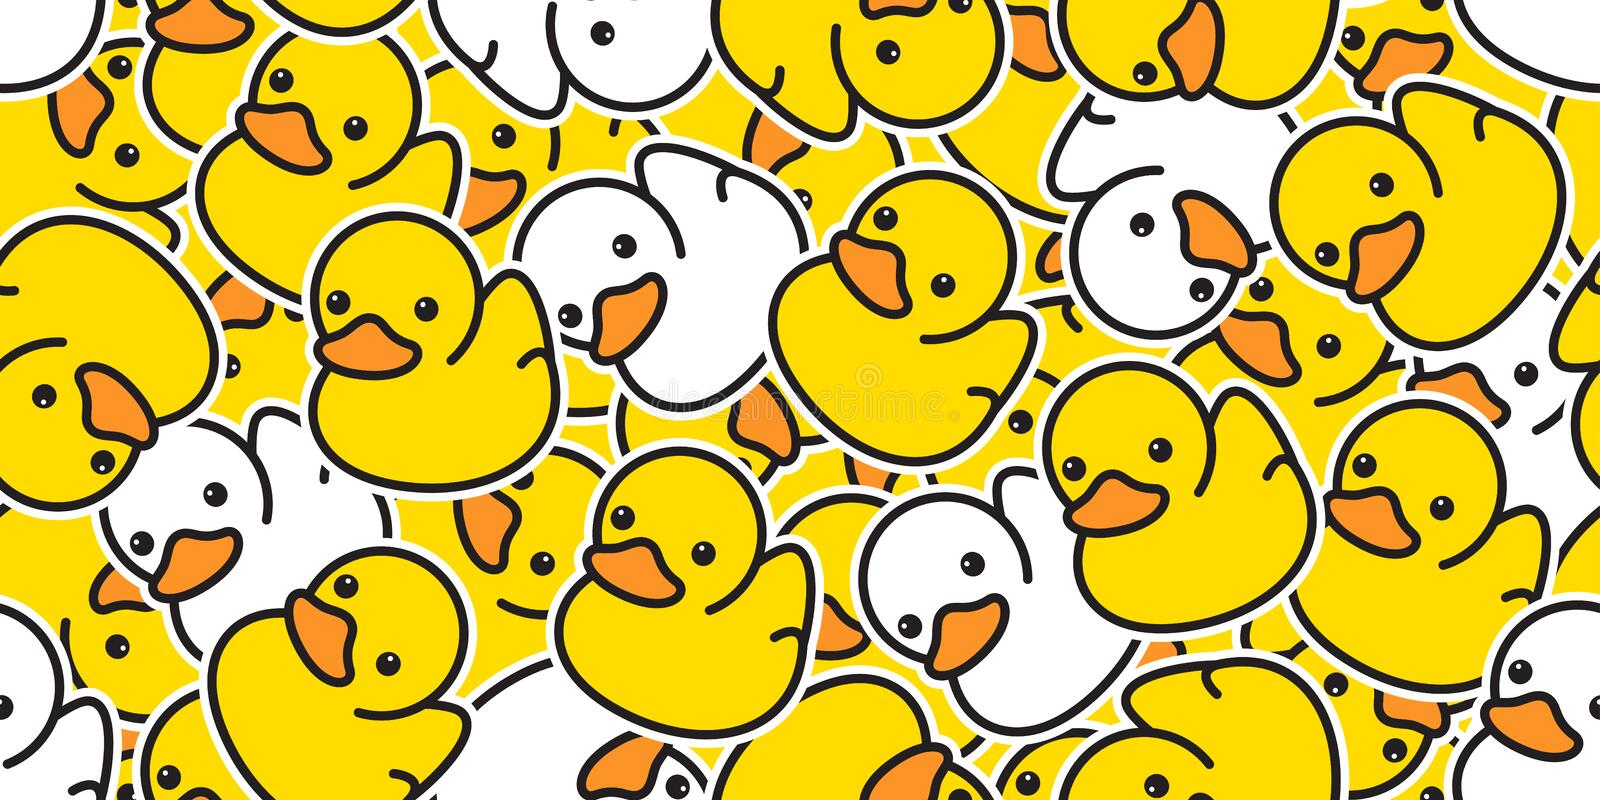 Duck rubber seamless pattern vector ducky cartoon scarf isolated illustration bird bath shower repeat wallpaper tile background de. Sign cute vector illustration